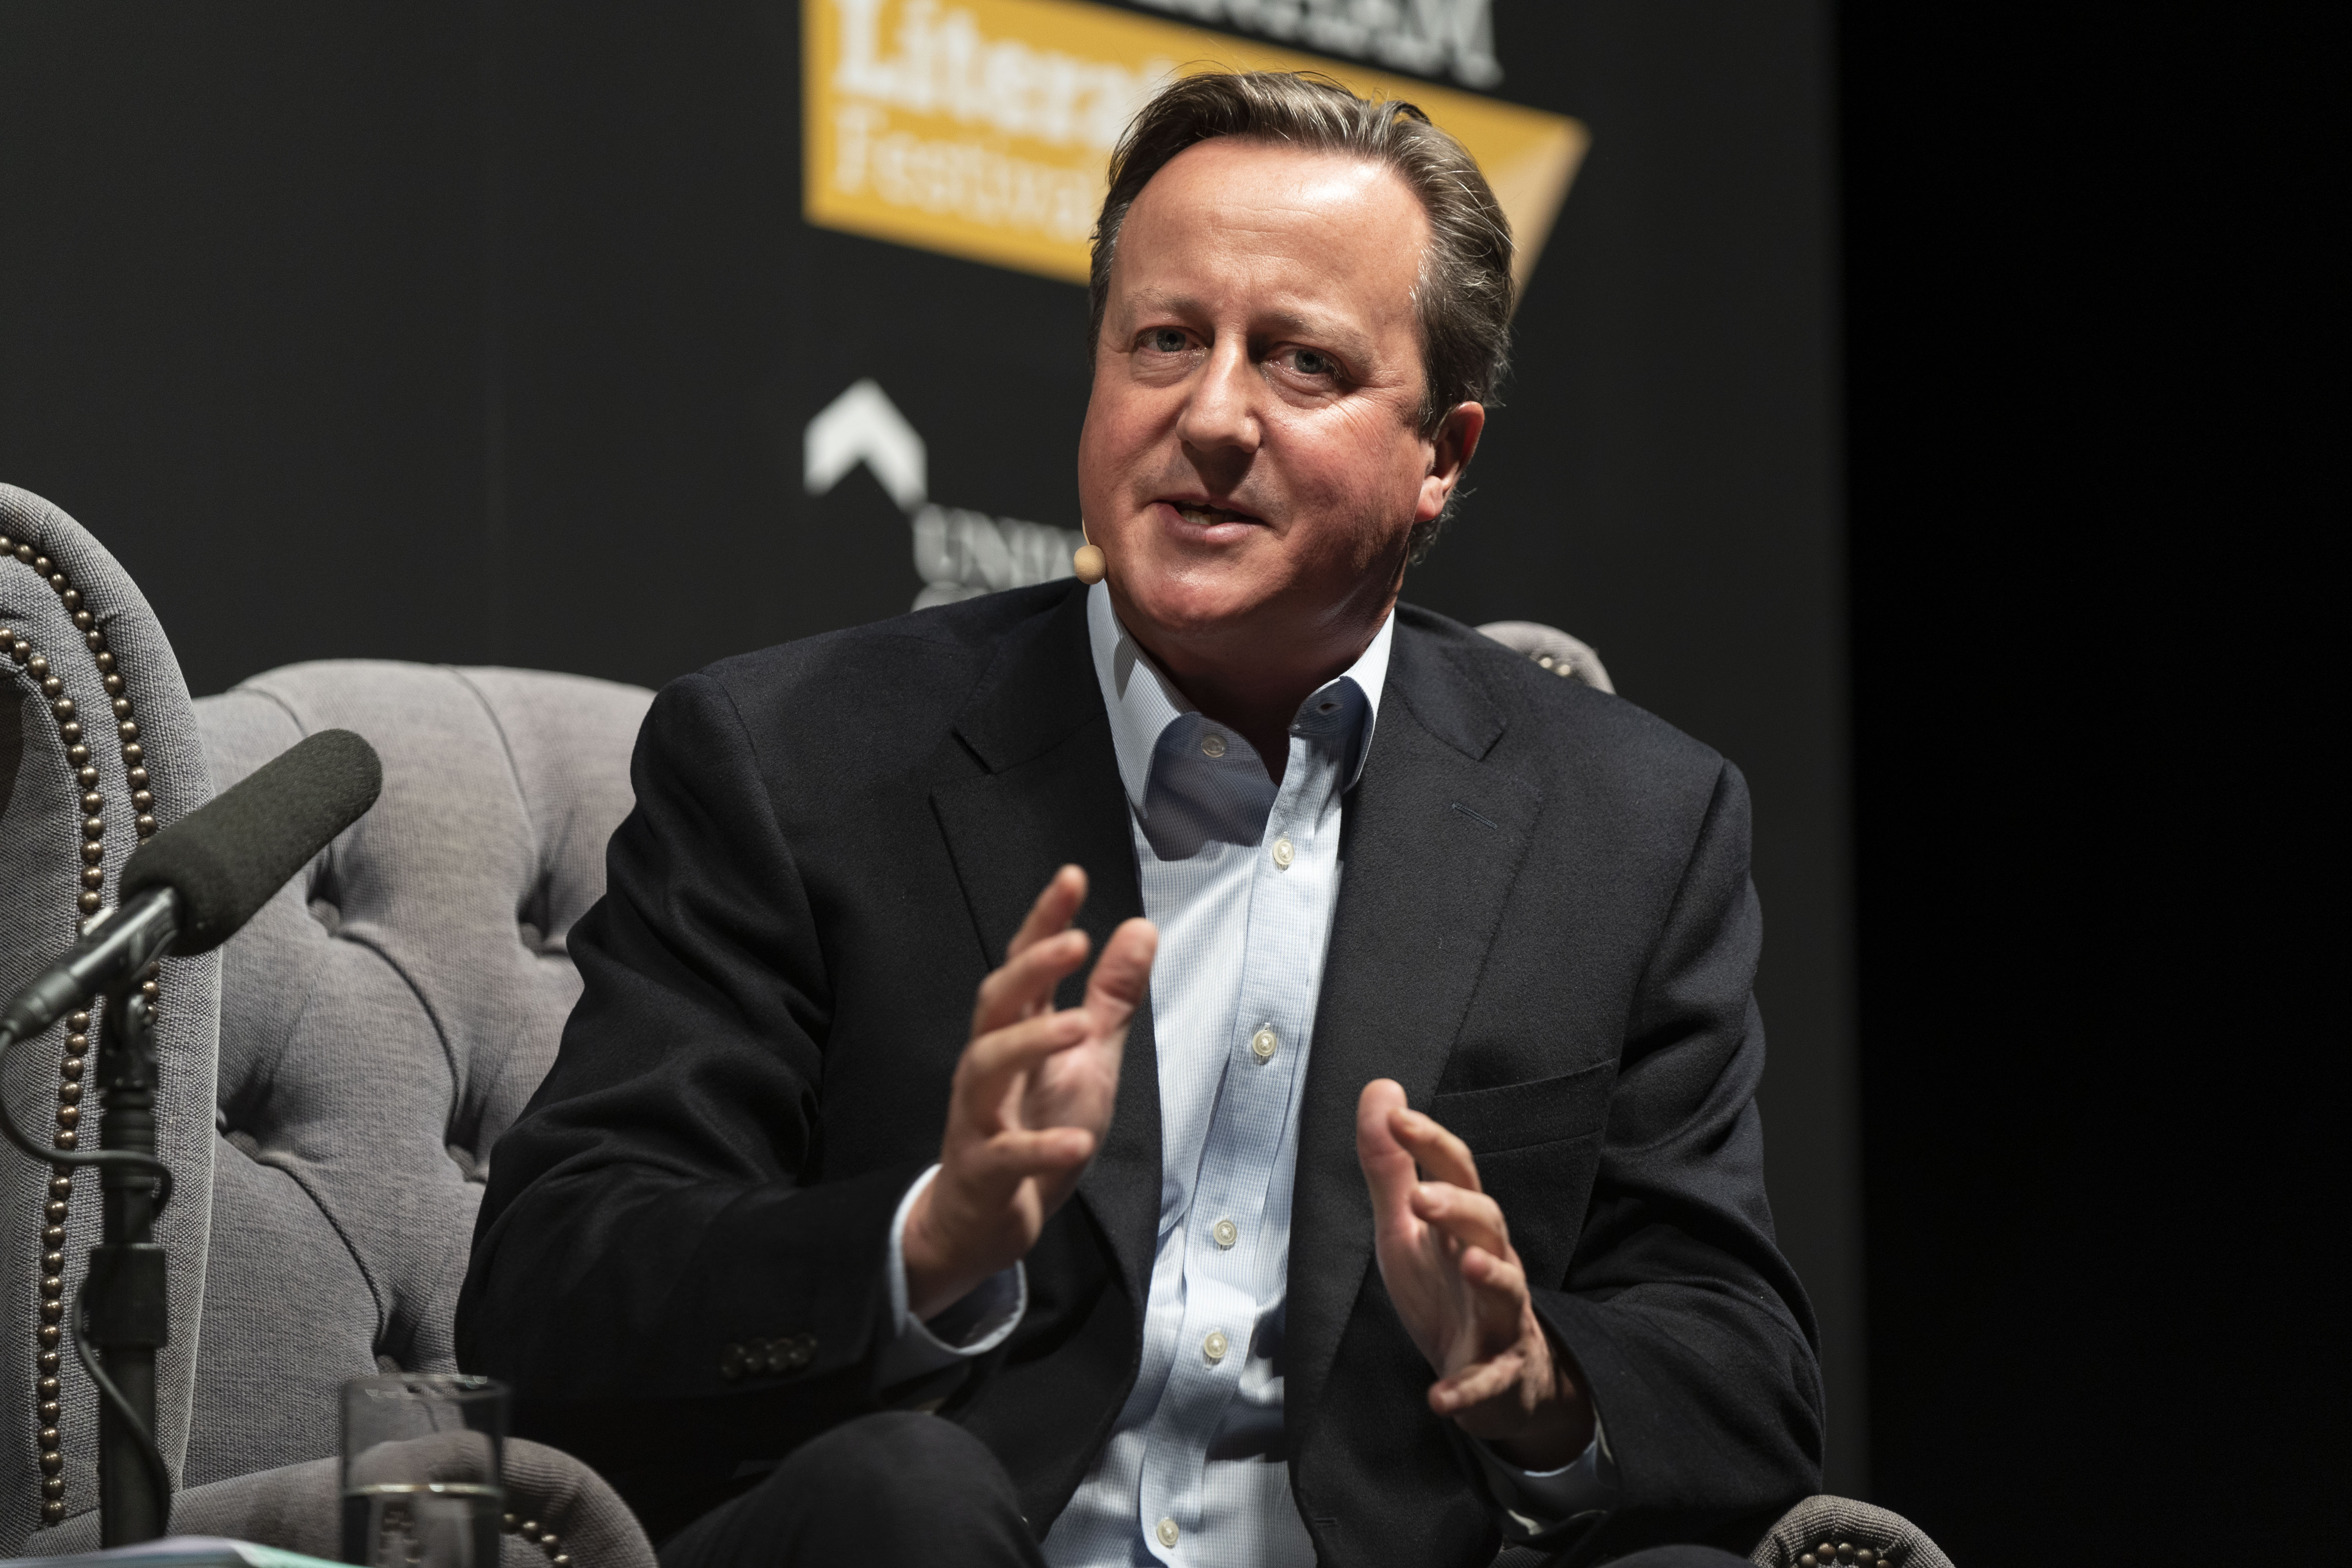 CHELTENHAM, ENGLAND - OCTOBER 5: David Cameron, former UK Prime Minister, discusses his new memoir, 'For the Record' at the Cheltenham Literature Festival 2019 on October 5, 2019 in Cheltenham, England. (Photo by David Levenson/Getty Images)